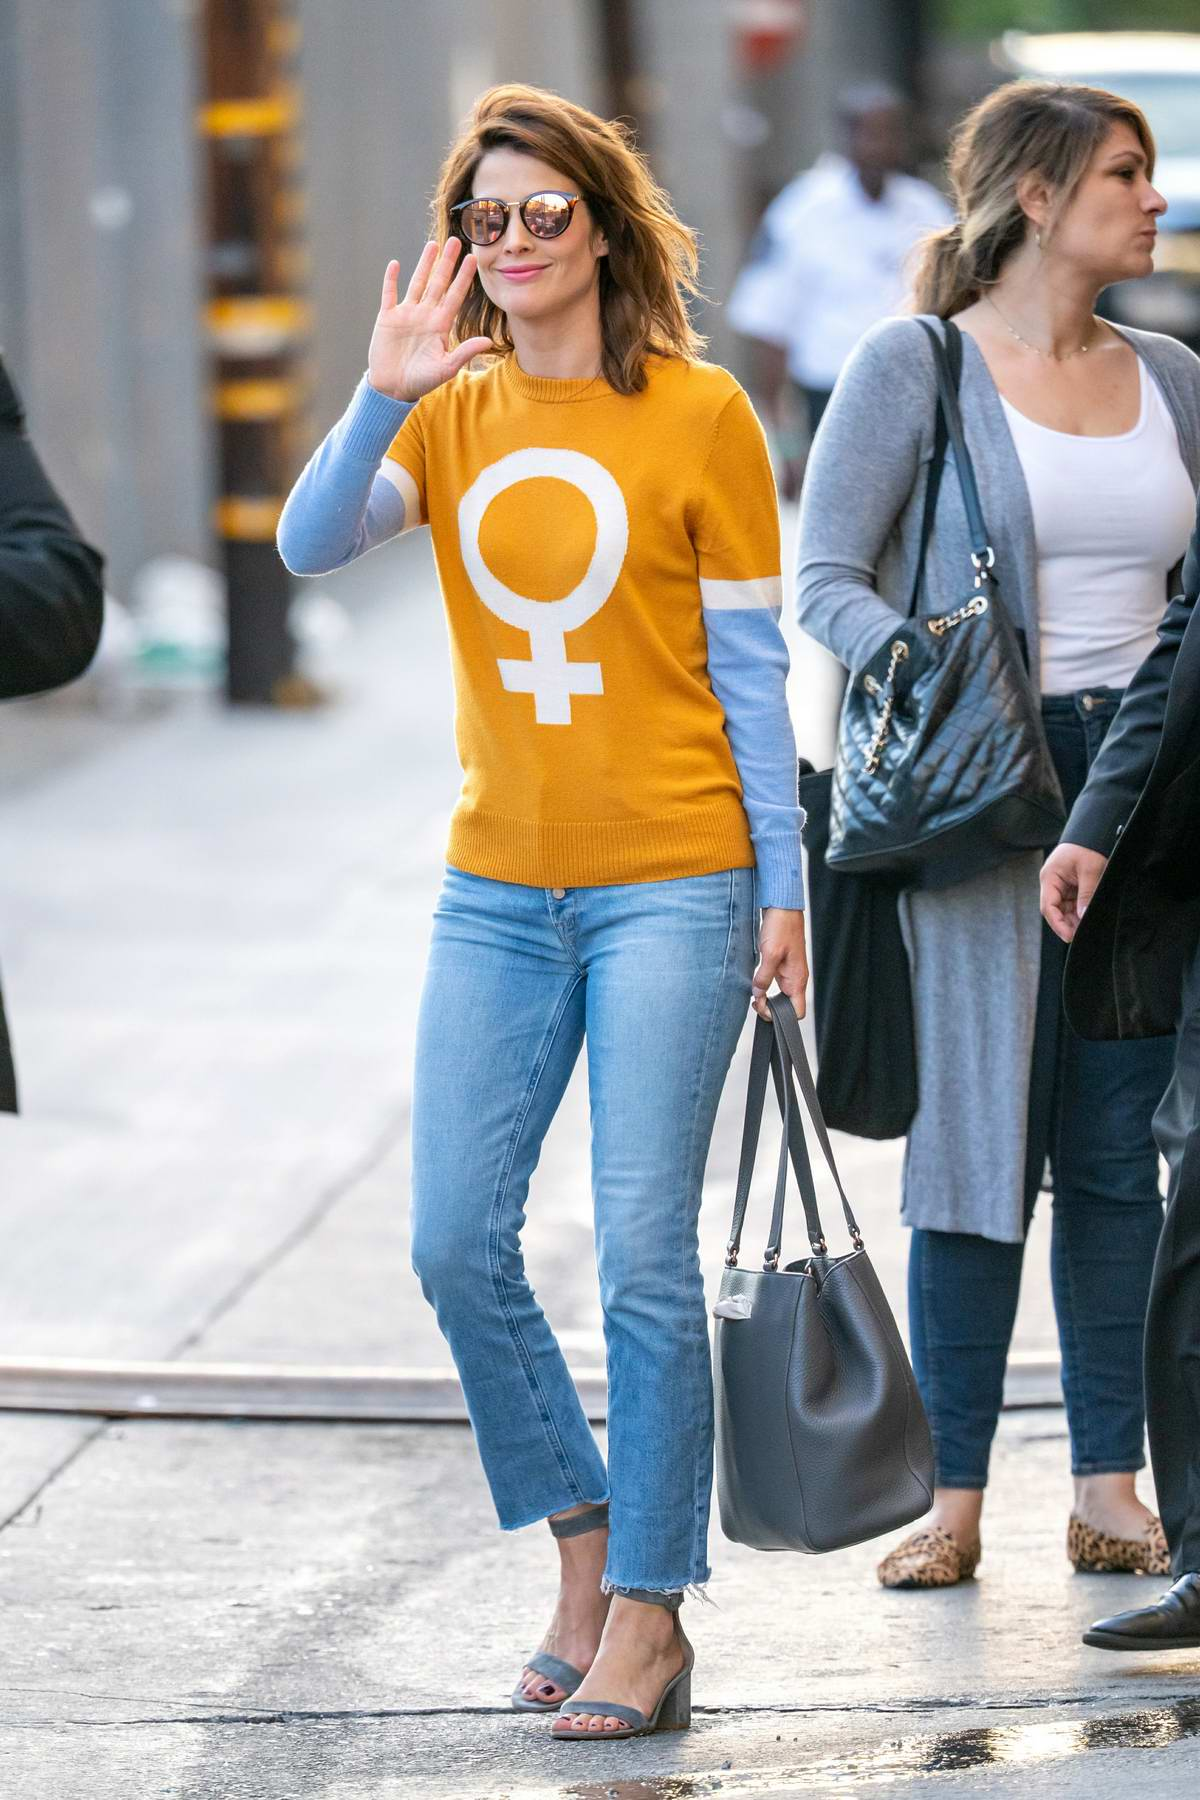 Cobie Smulders looks stunning in an orange full length shirt and jeans as she arrives at Jimmy Kimmel Live! in Los Angeles